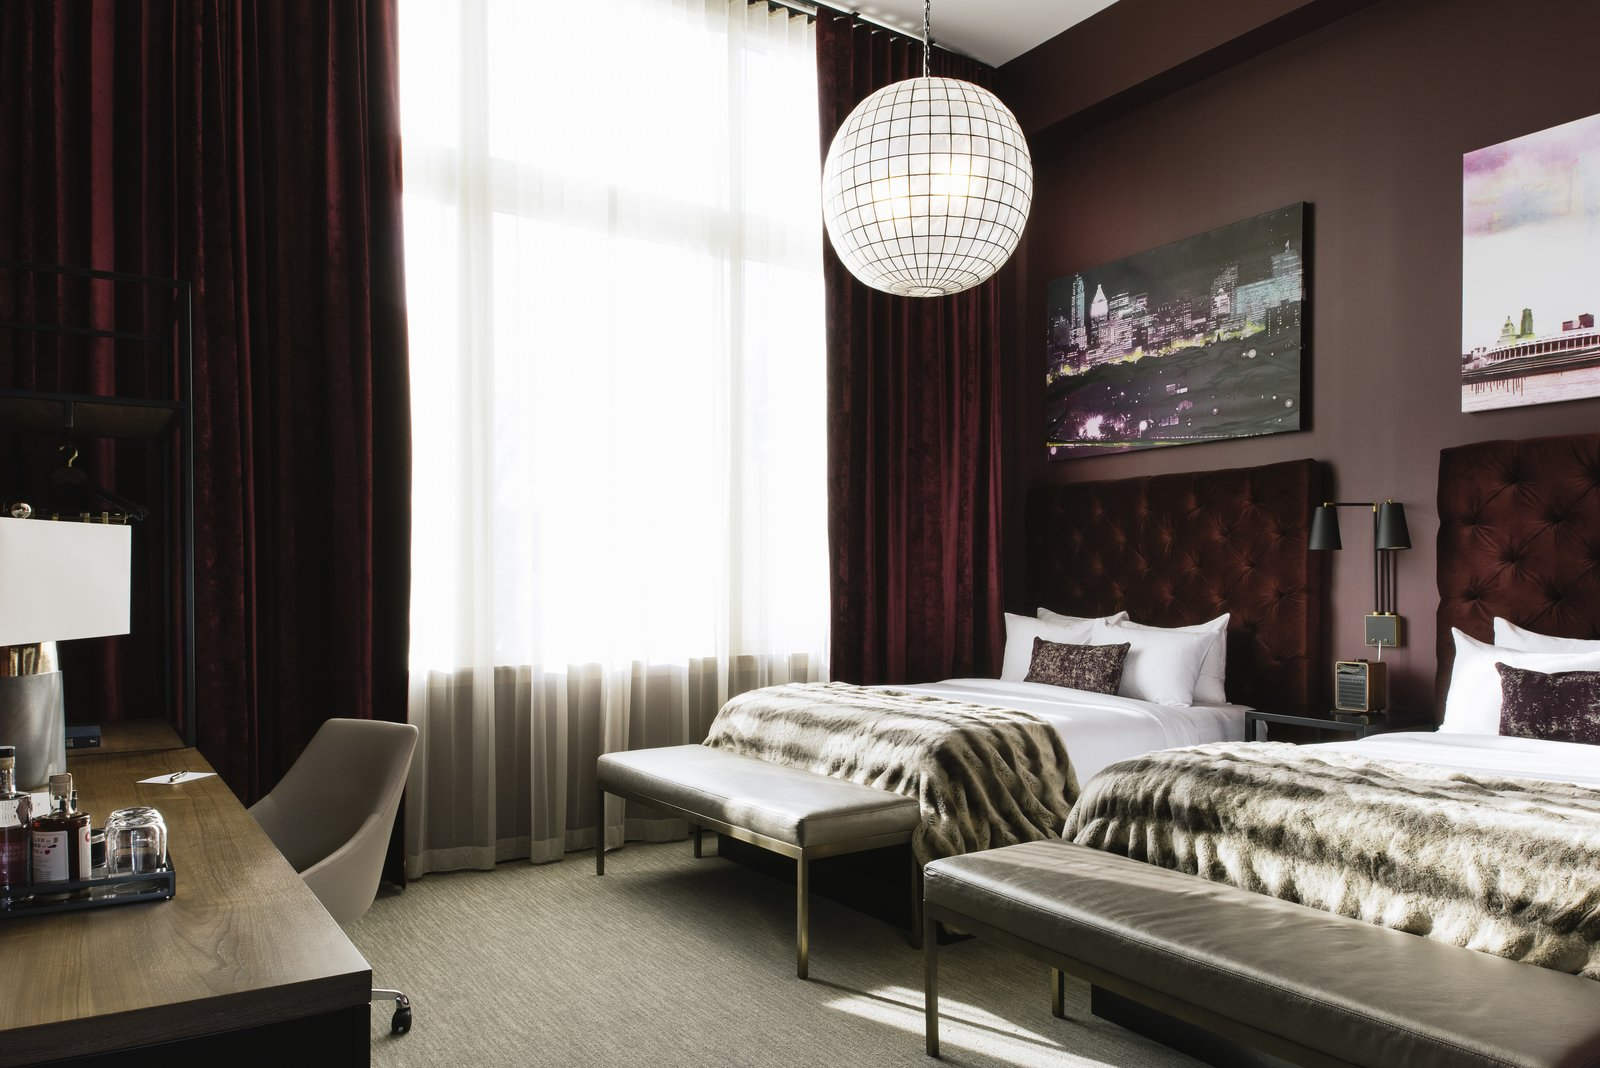 Bedroom, Chair, Night Stands, Bed, Bench, Wall, Pendant, and Carpet Sleek, stylish vibes await guests in the rooms at Hotel Covington.  Bedroom Carpet Night Stands Pendant Bench Photos from This Group Is Reimagining the Future of Boutique Hotels